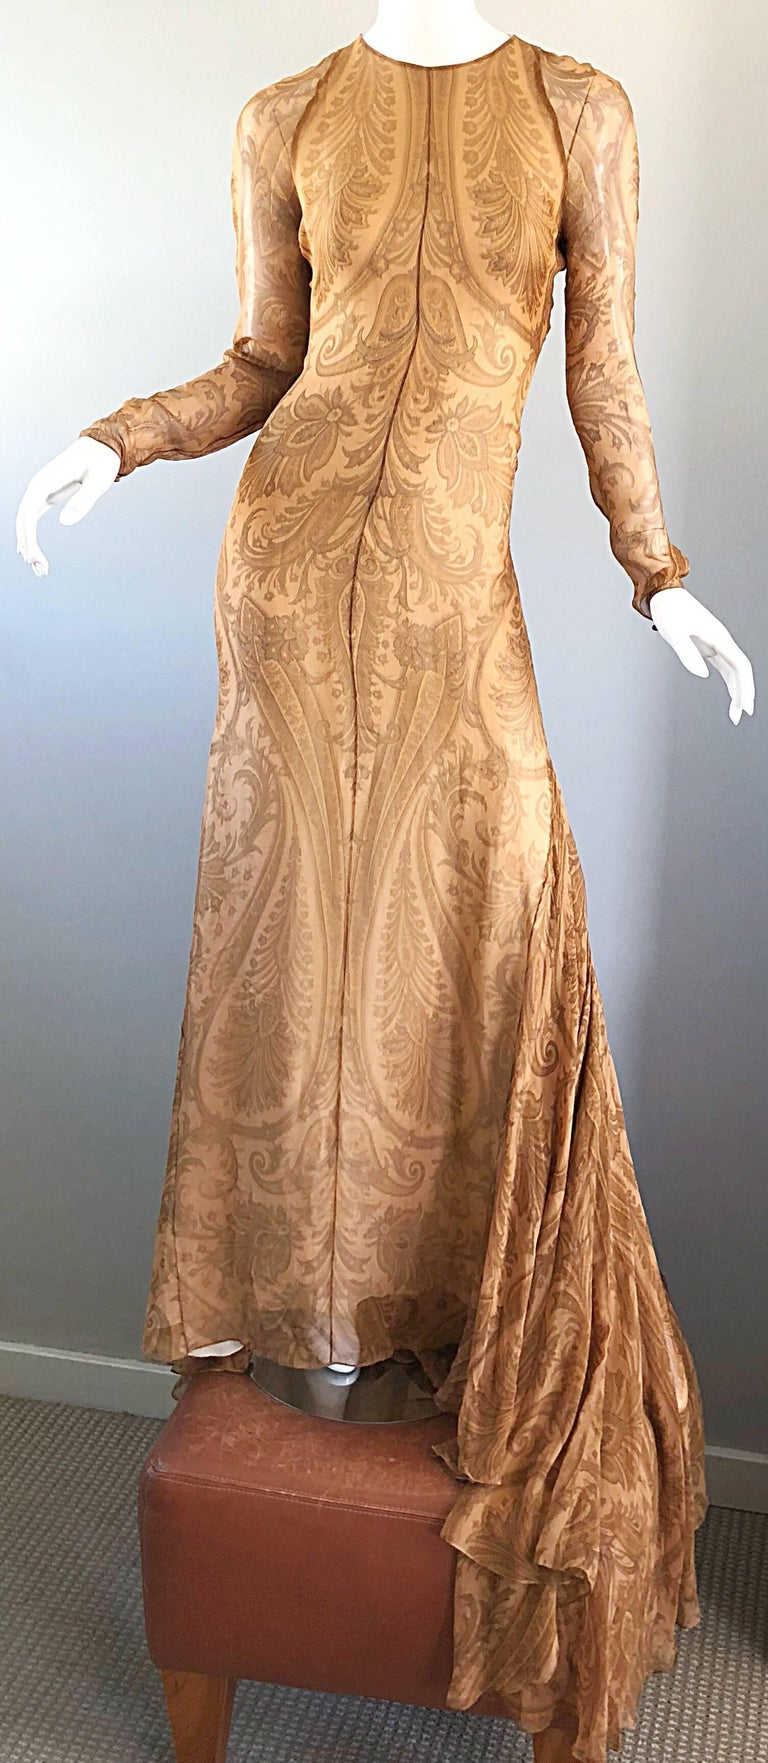 Sensational vintage late 90s BILL BLASS couture nude silk chiffon paisley print full length evening dress with dramatic train! This is an original sample, and is incredibly well made! Regal paisley print throughout, with semi sheer long sleek